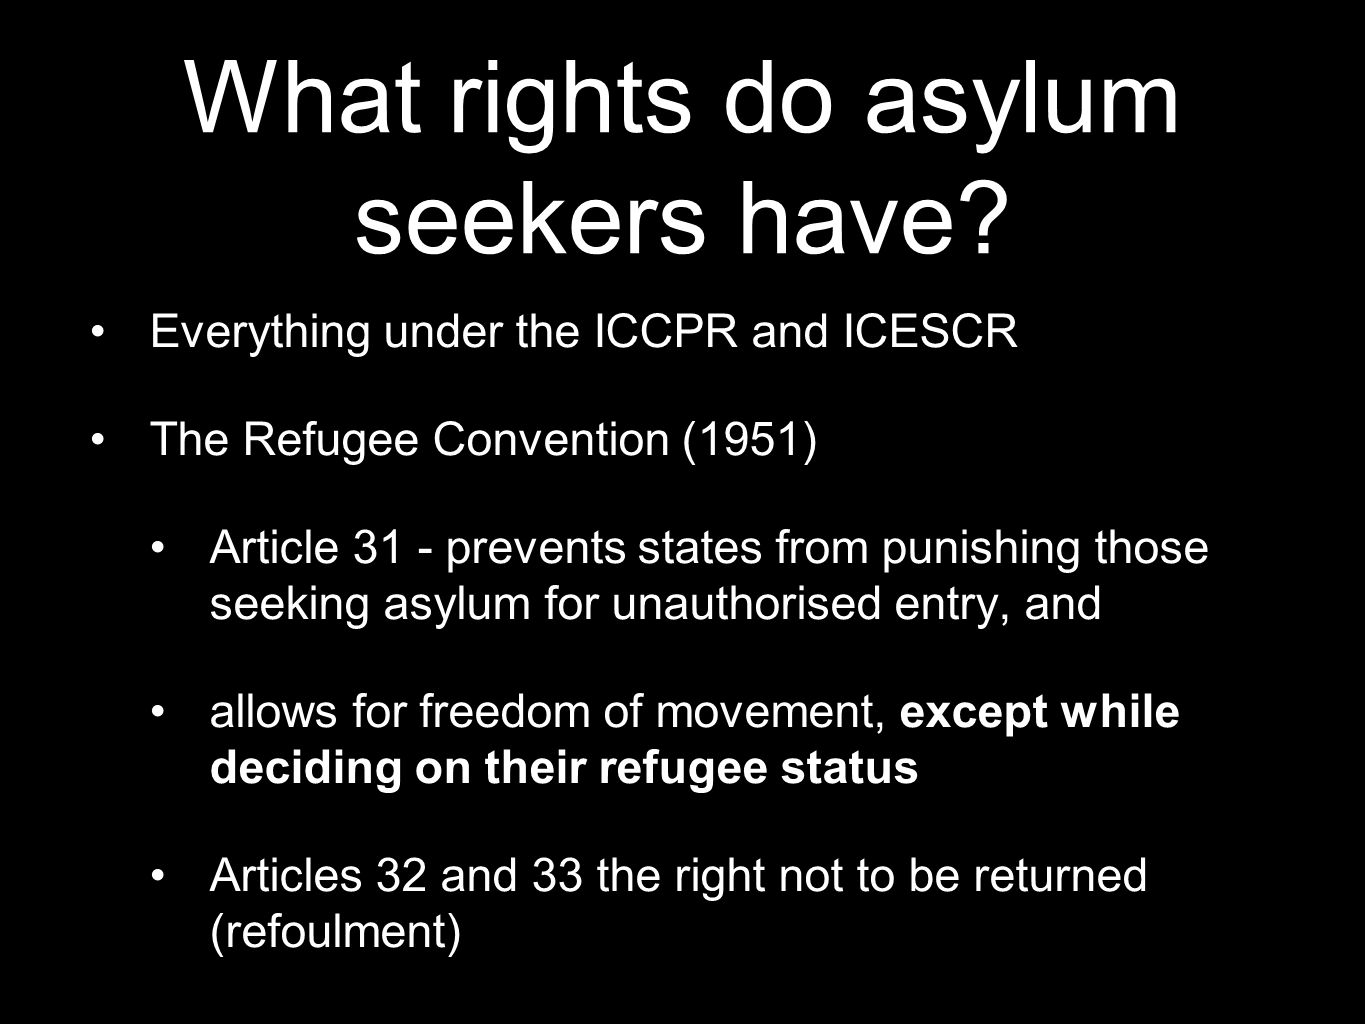 What rights do asylum seekers have